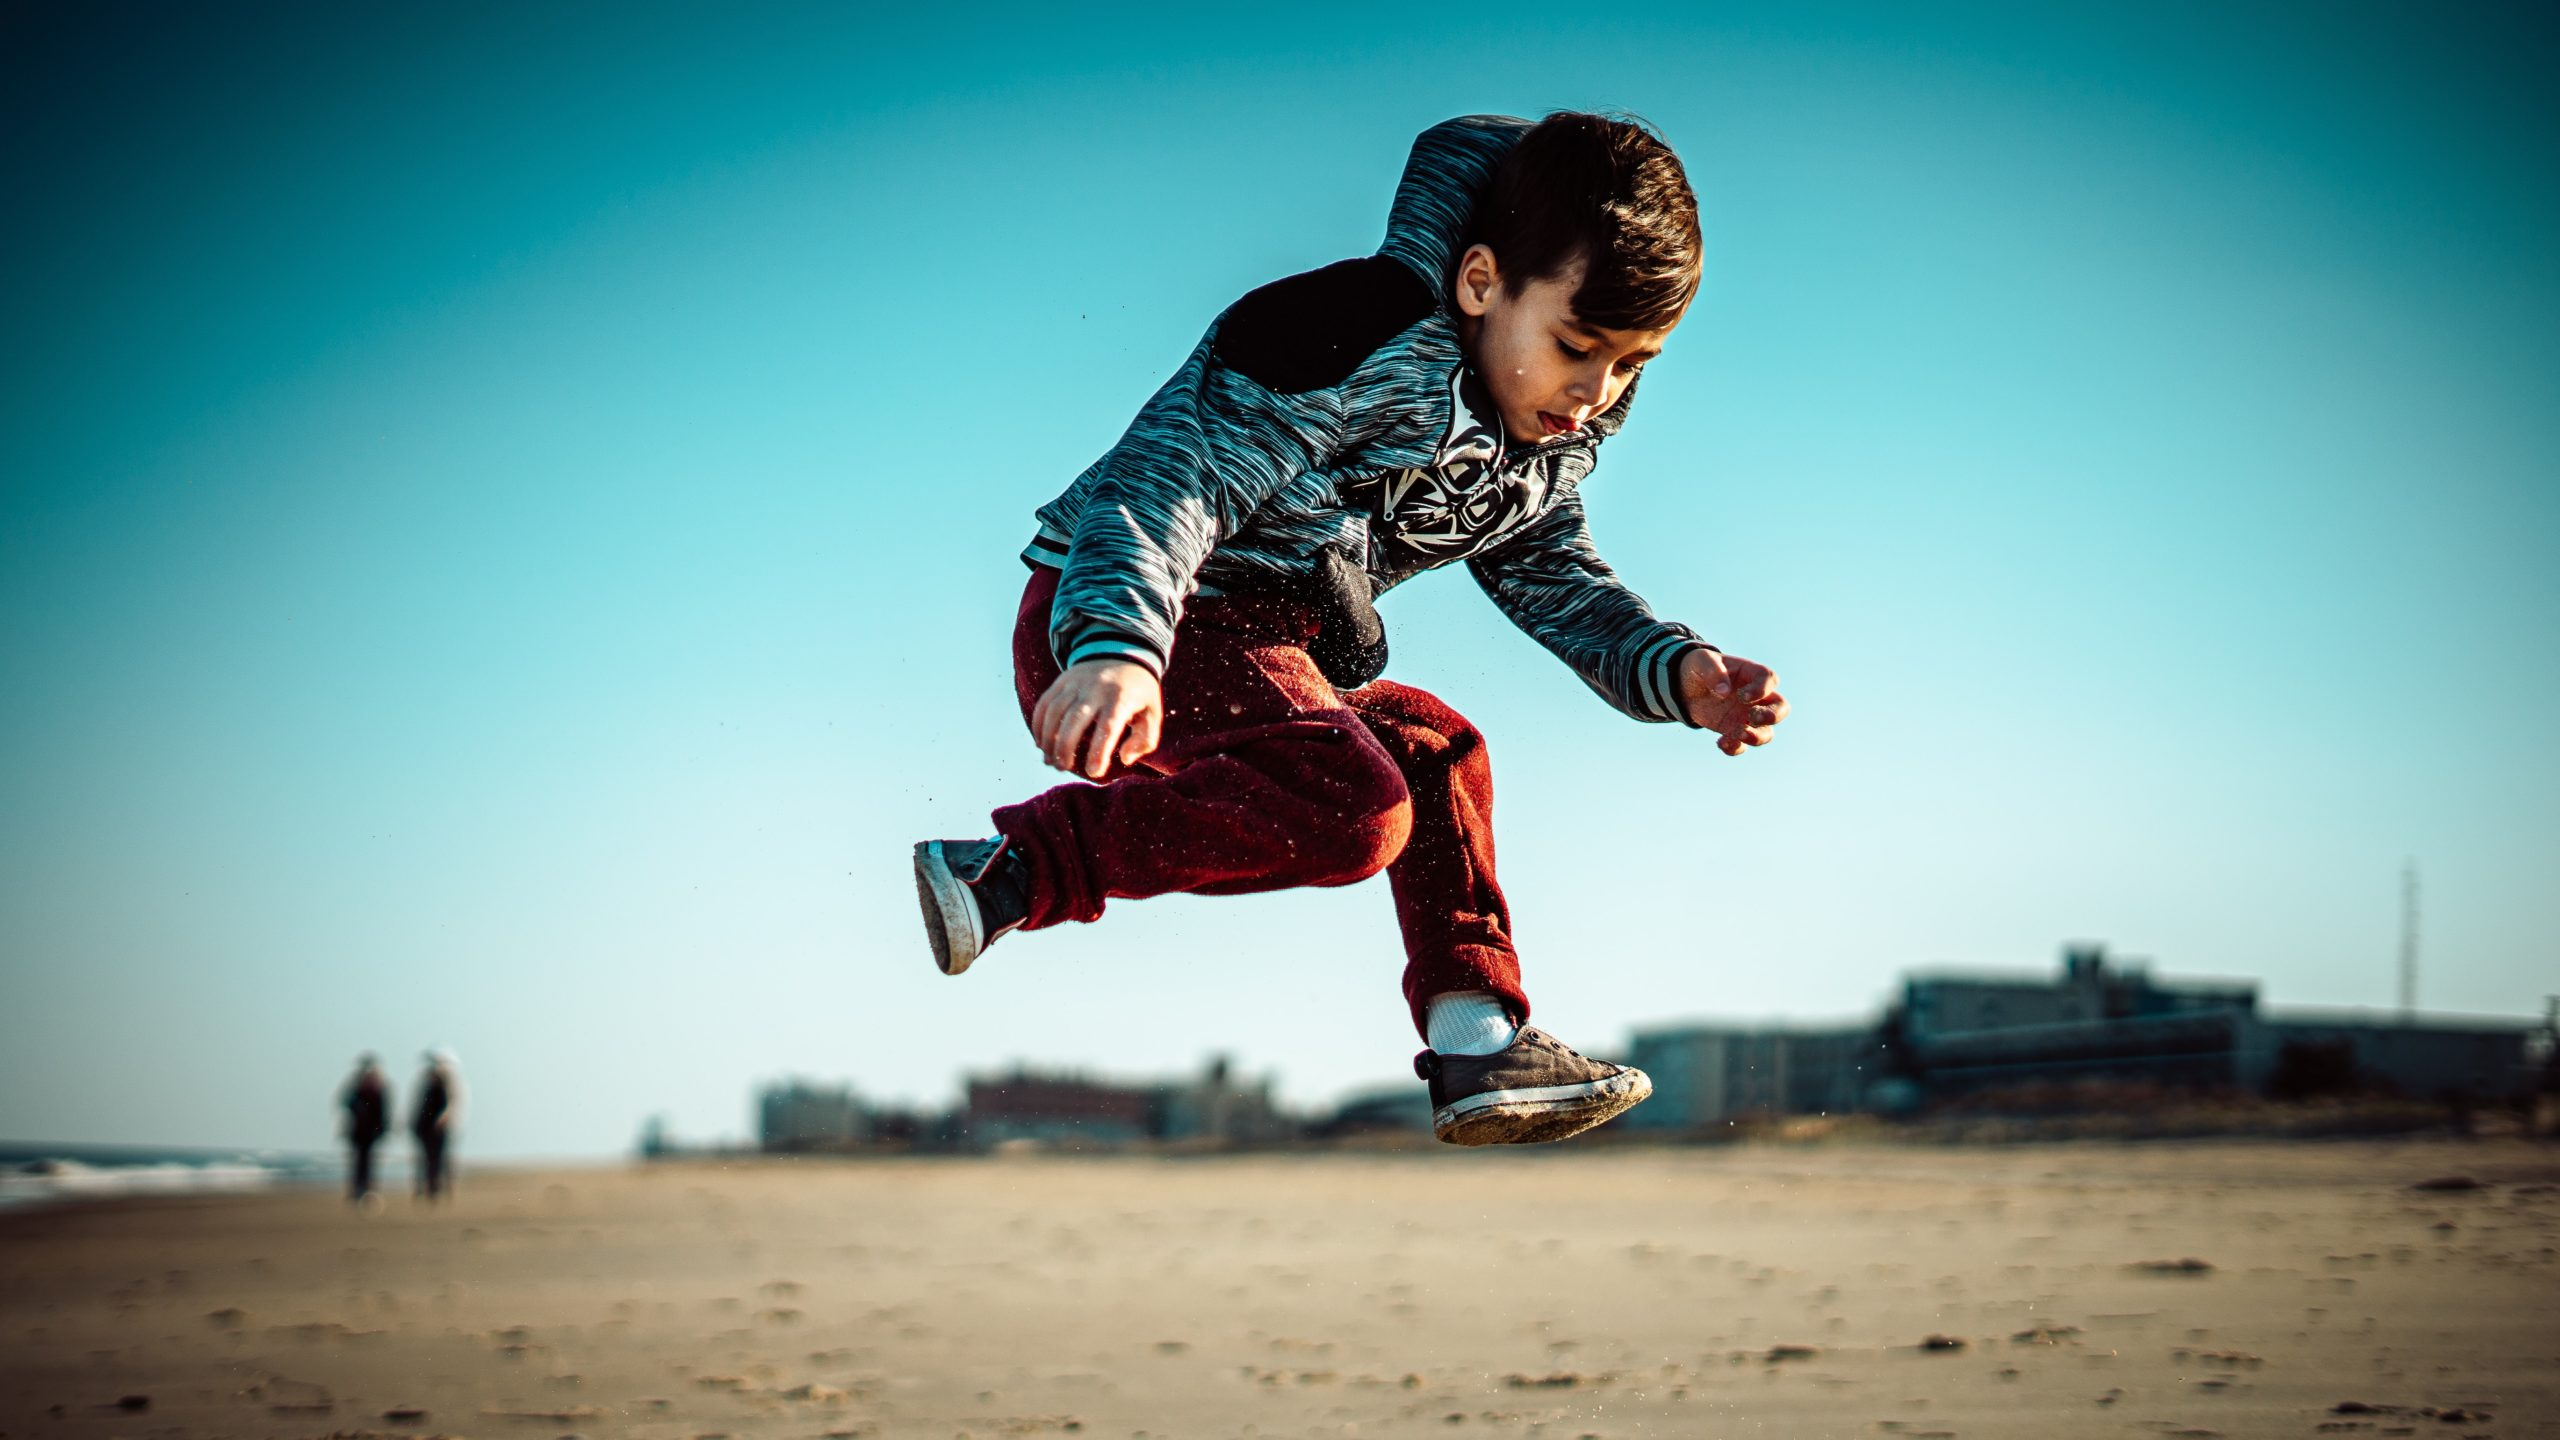 Temporary Private Educator Needed in Venice for 5 Year Old Boy with Special Needs! Position Begins ASAP!